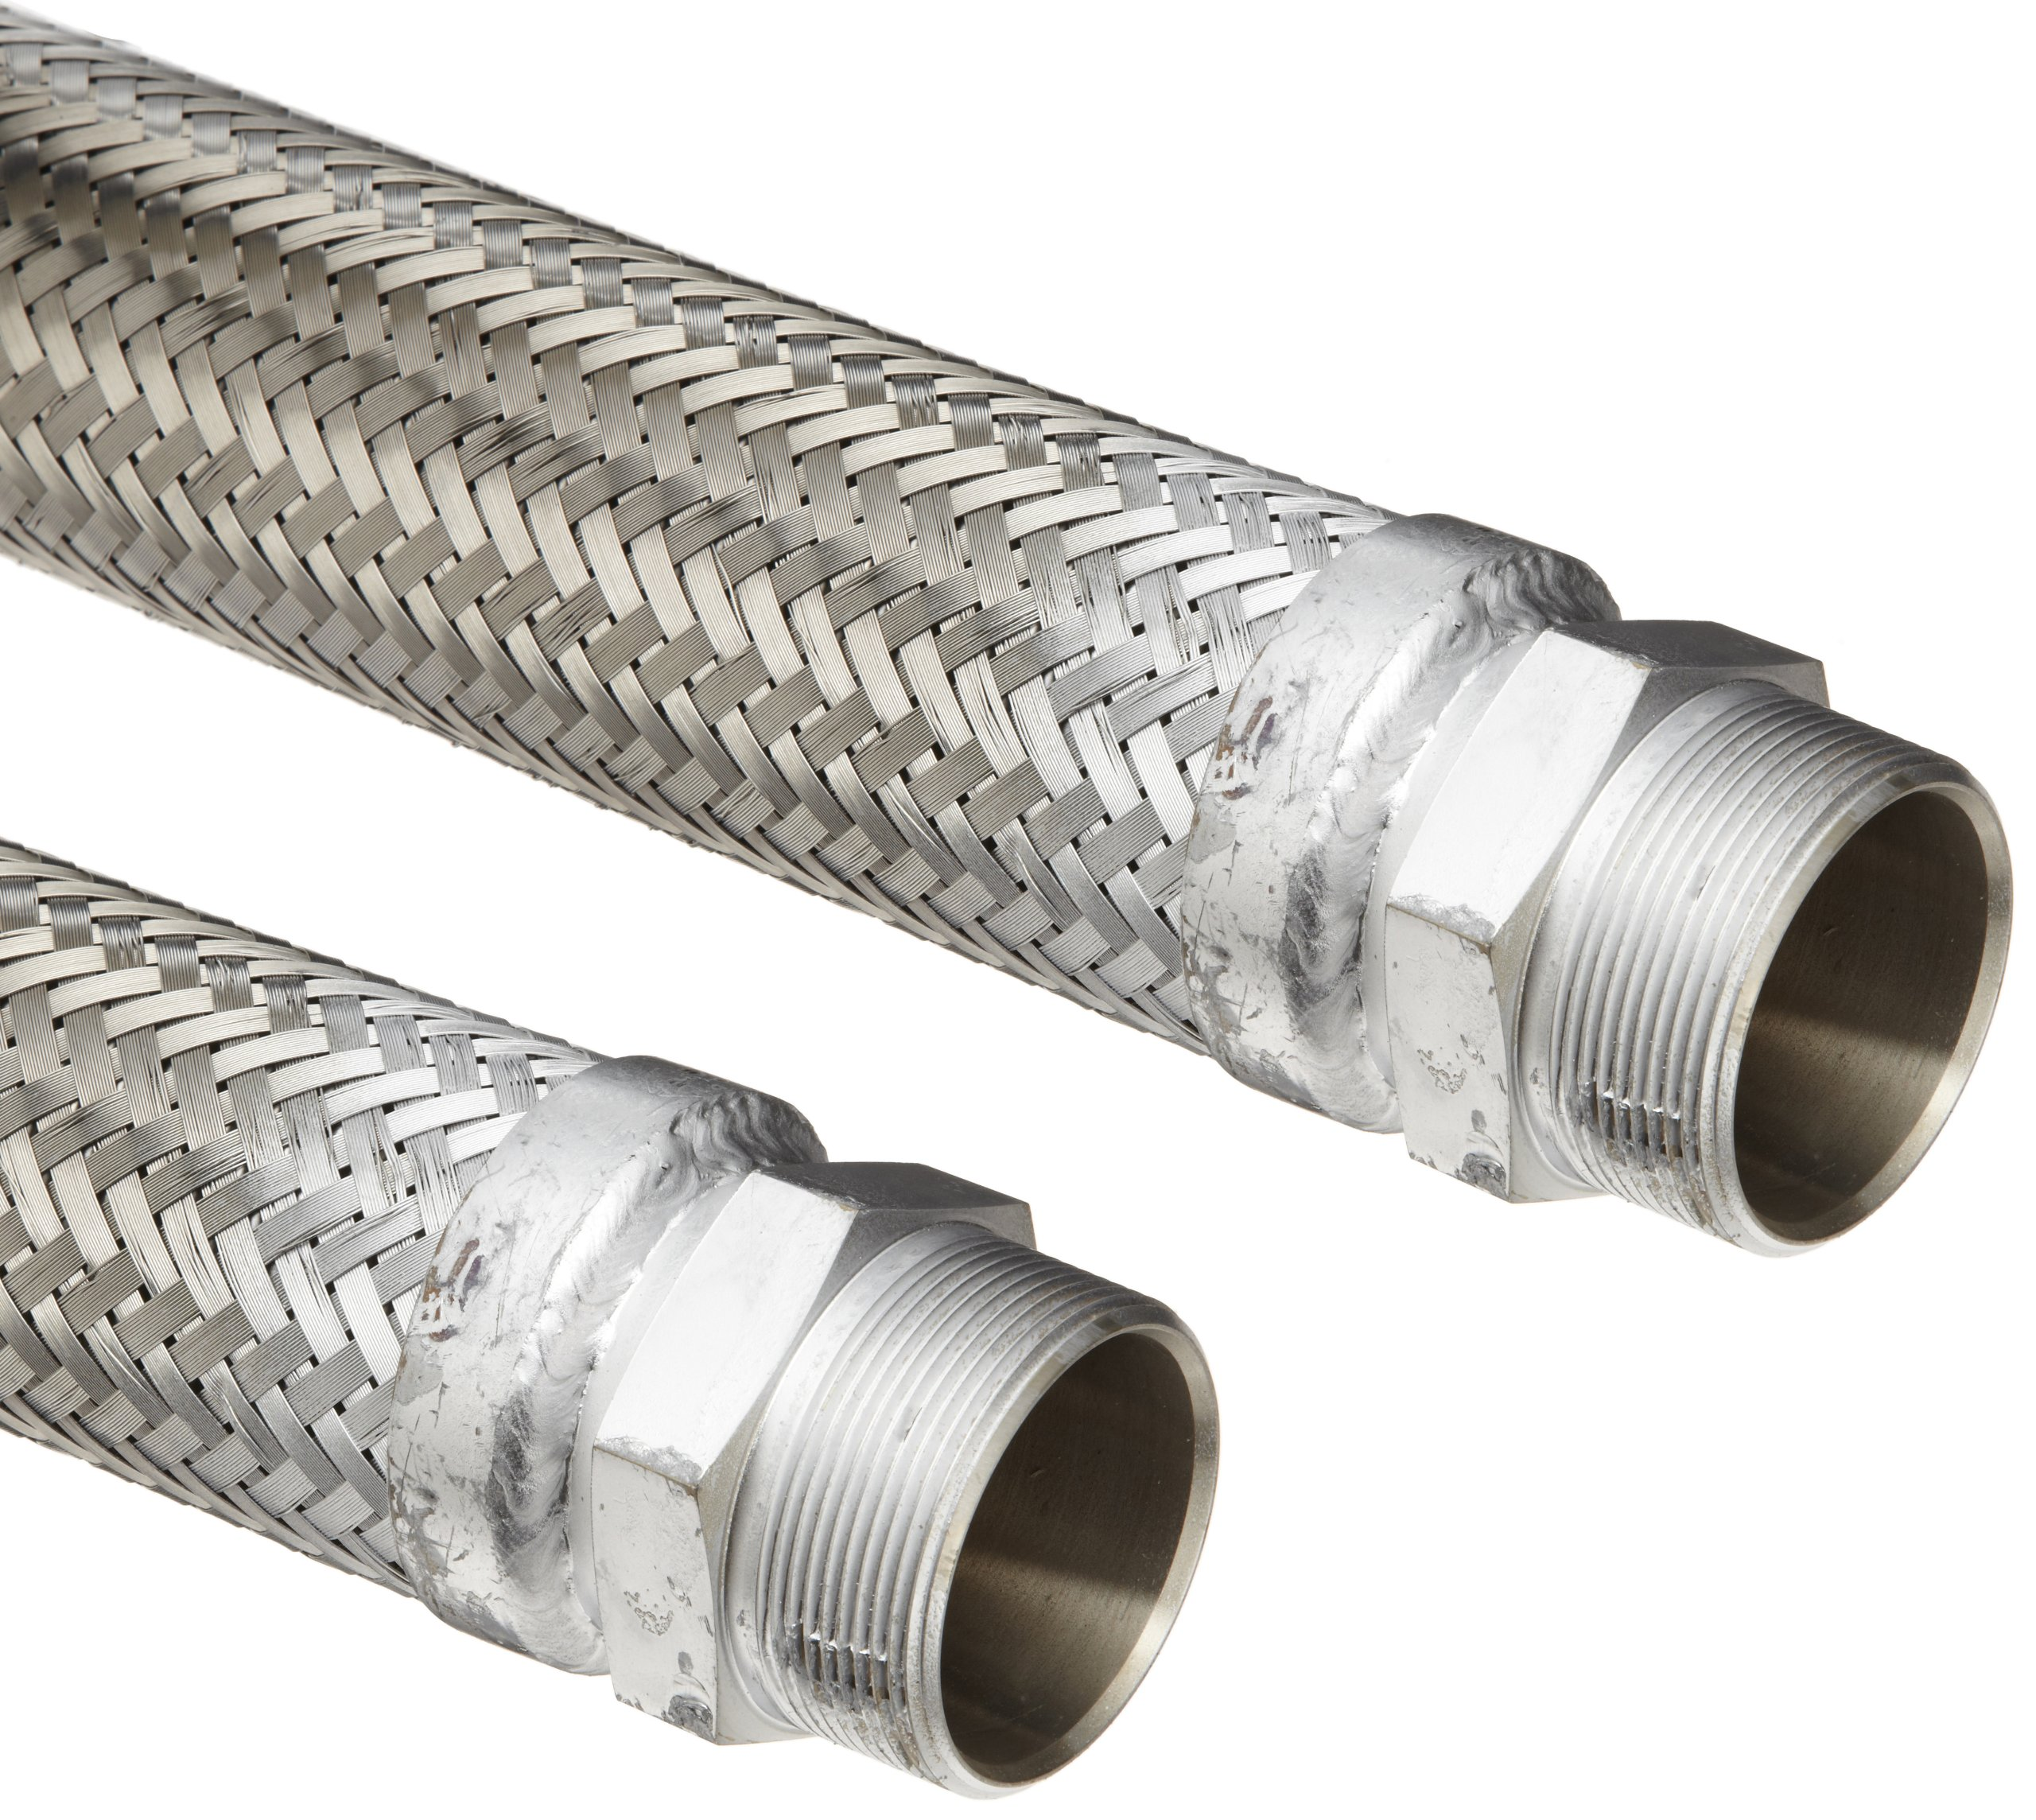 Hose Master Masterflex Stainless Steel 321 Flexible Hose Assembly, 1-1/2'' Stainless Steel 304 Hex NPT Male x Hex NPT Male Connection, 531 PSI Maximum Pressure, 12'' Length, 1-1/2'' ID by Hosemaster (Image #1)